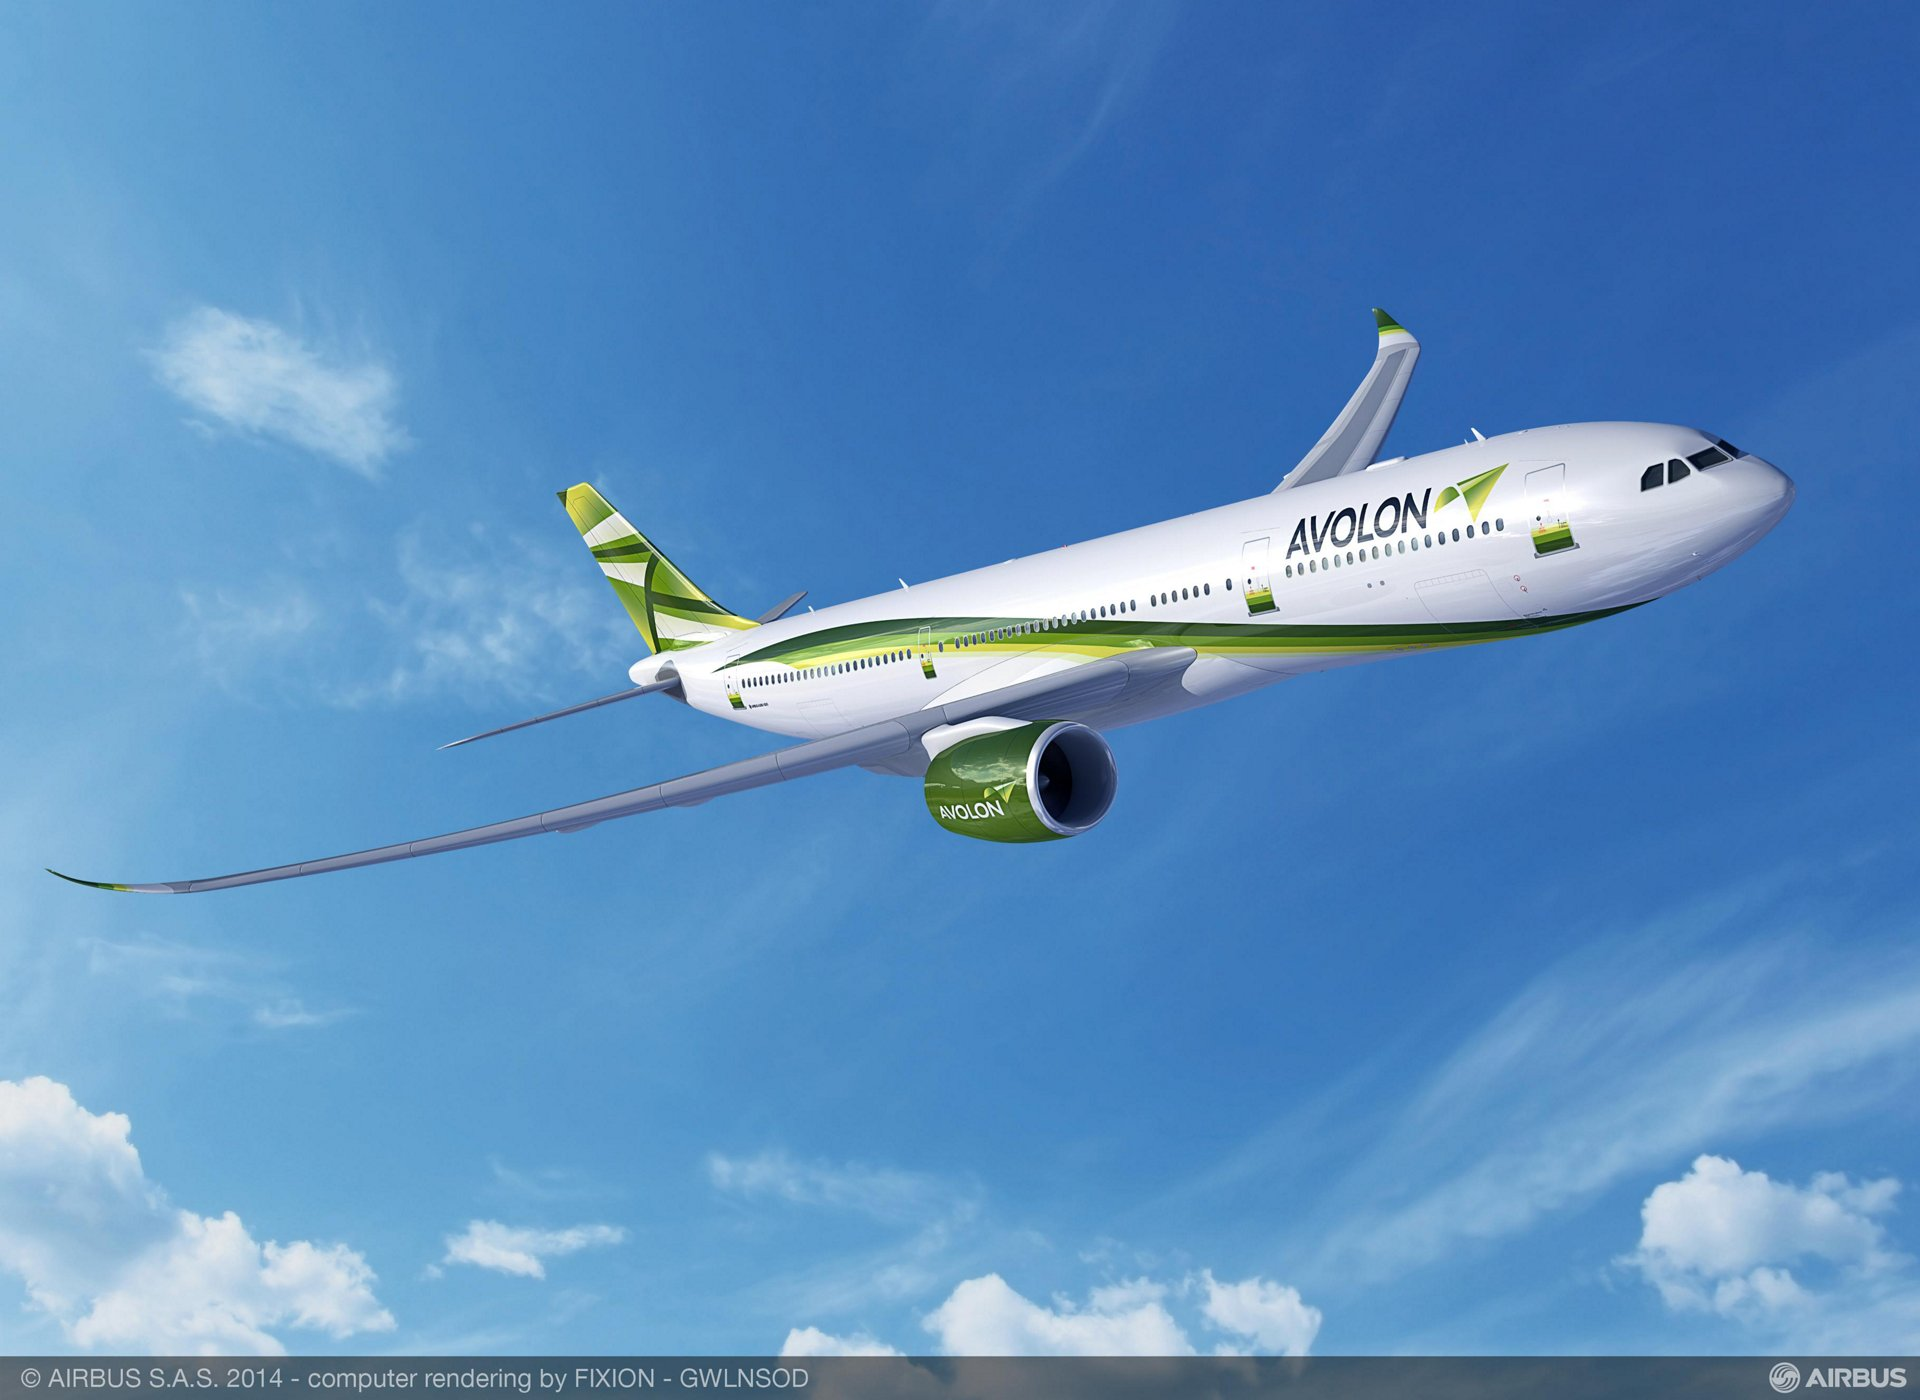 The Dublin-based Avolon global aircraft leasing firm – which became one of the A330neo (new engine option) launch customers with an initial commitment this July – has firmed up its contract for 15 A330neo jetliners